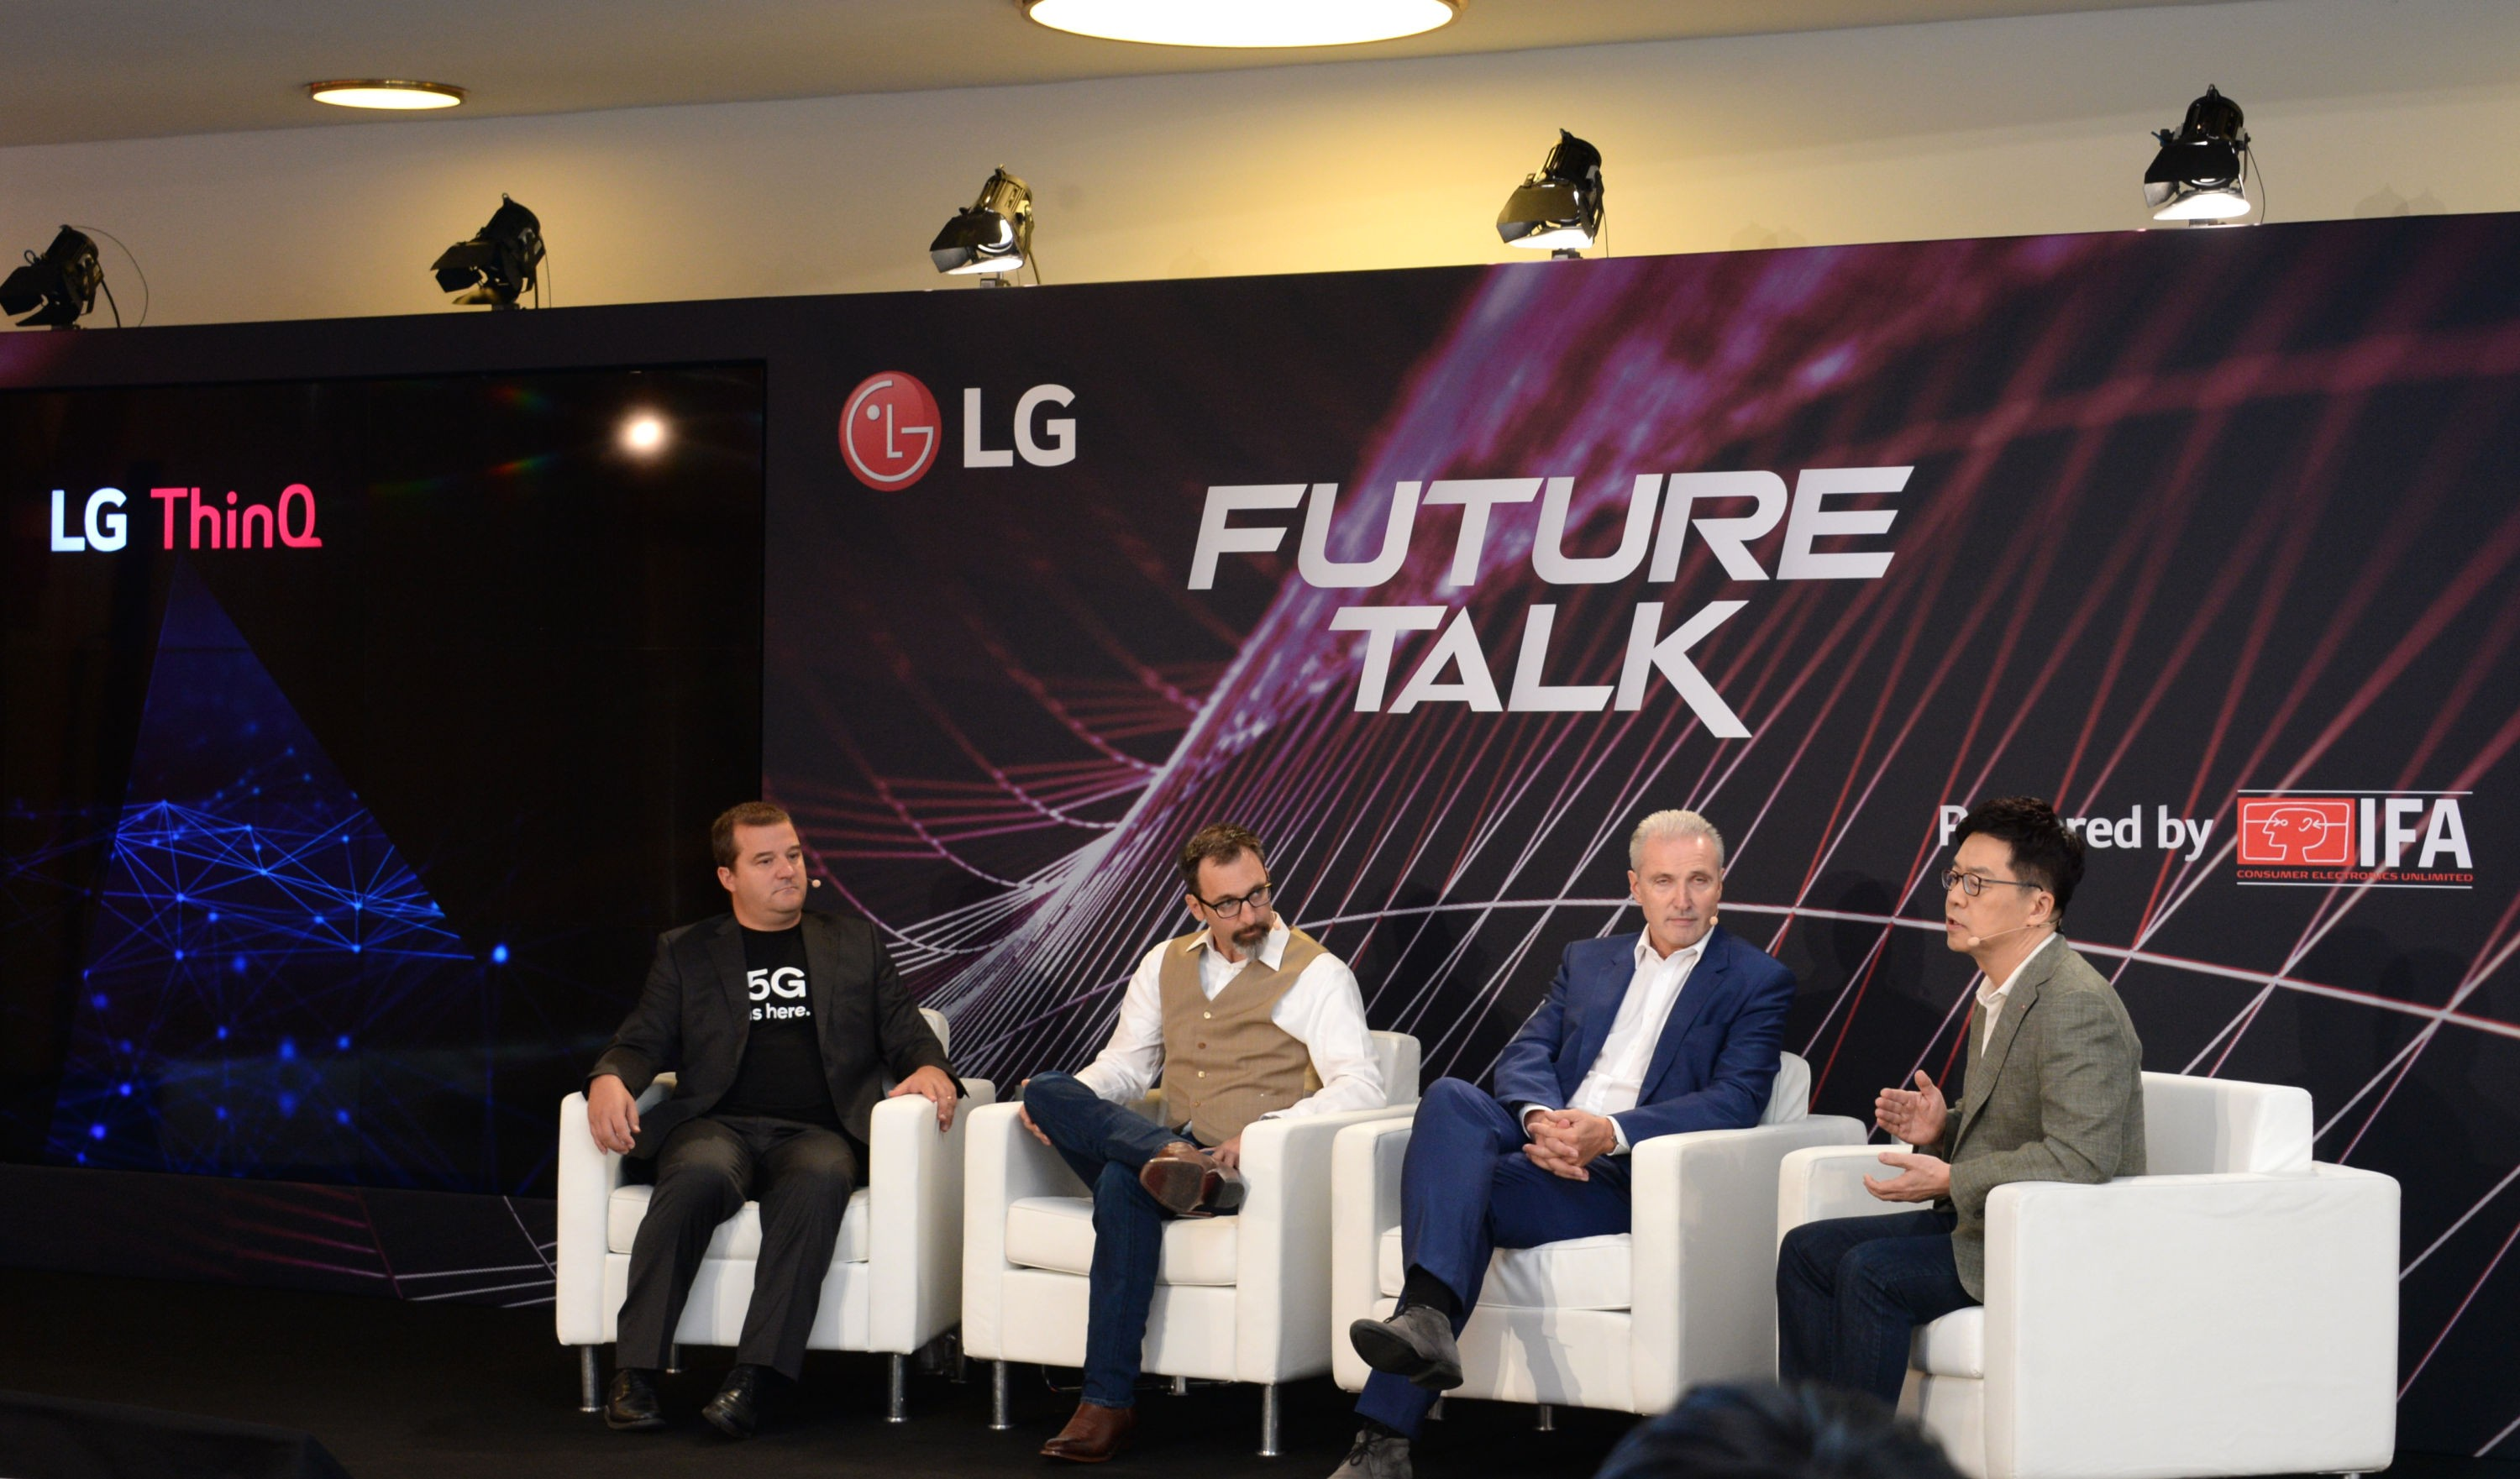 Dr. I.P. Park, president and CTO of LG Electronics, conducts a panel talk with three guest speakers from Qualcomm, iF International Forum Design and Telefonica's moonshot factory Alpha.